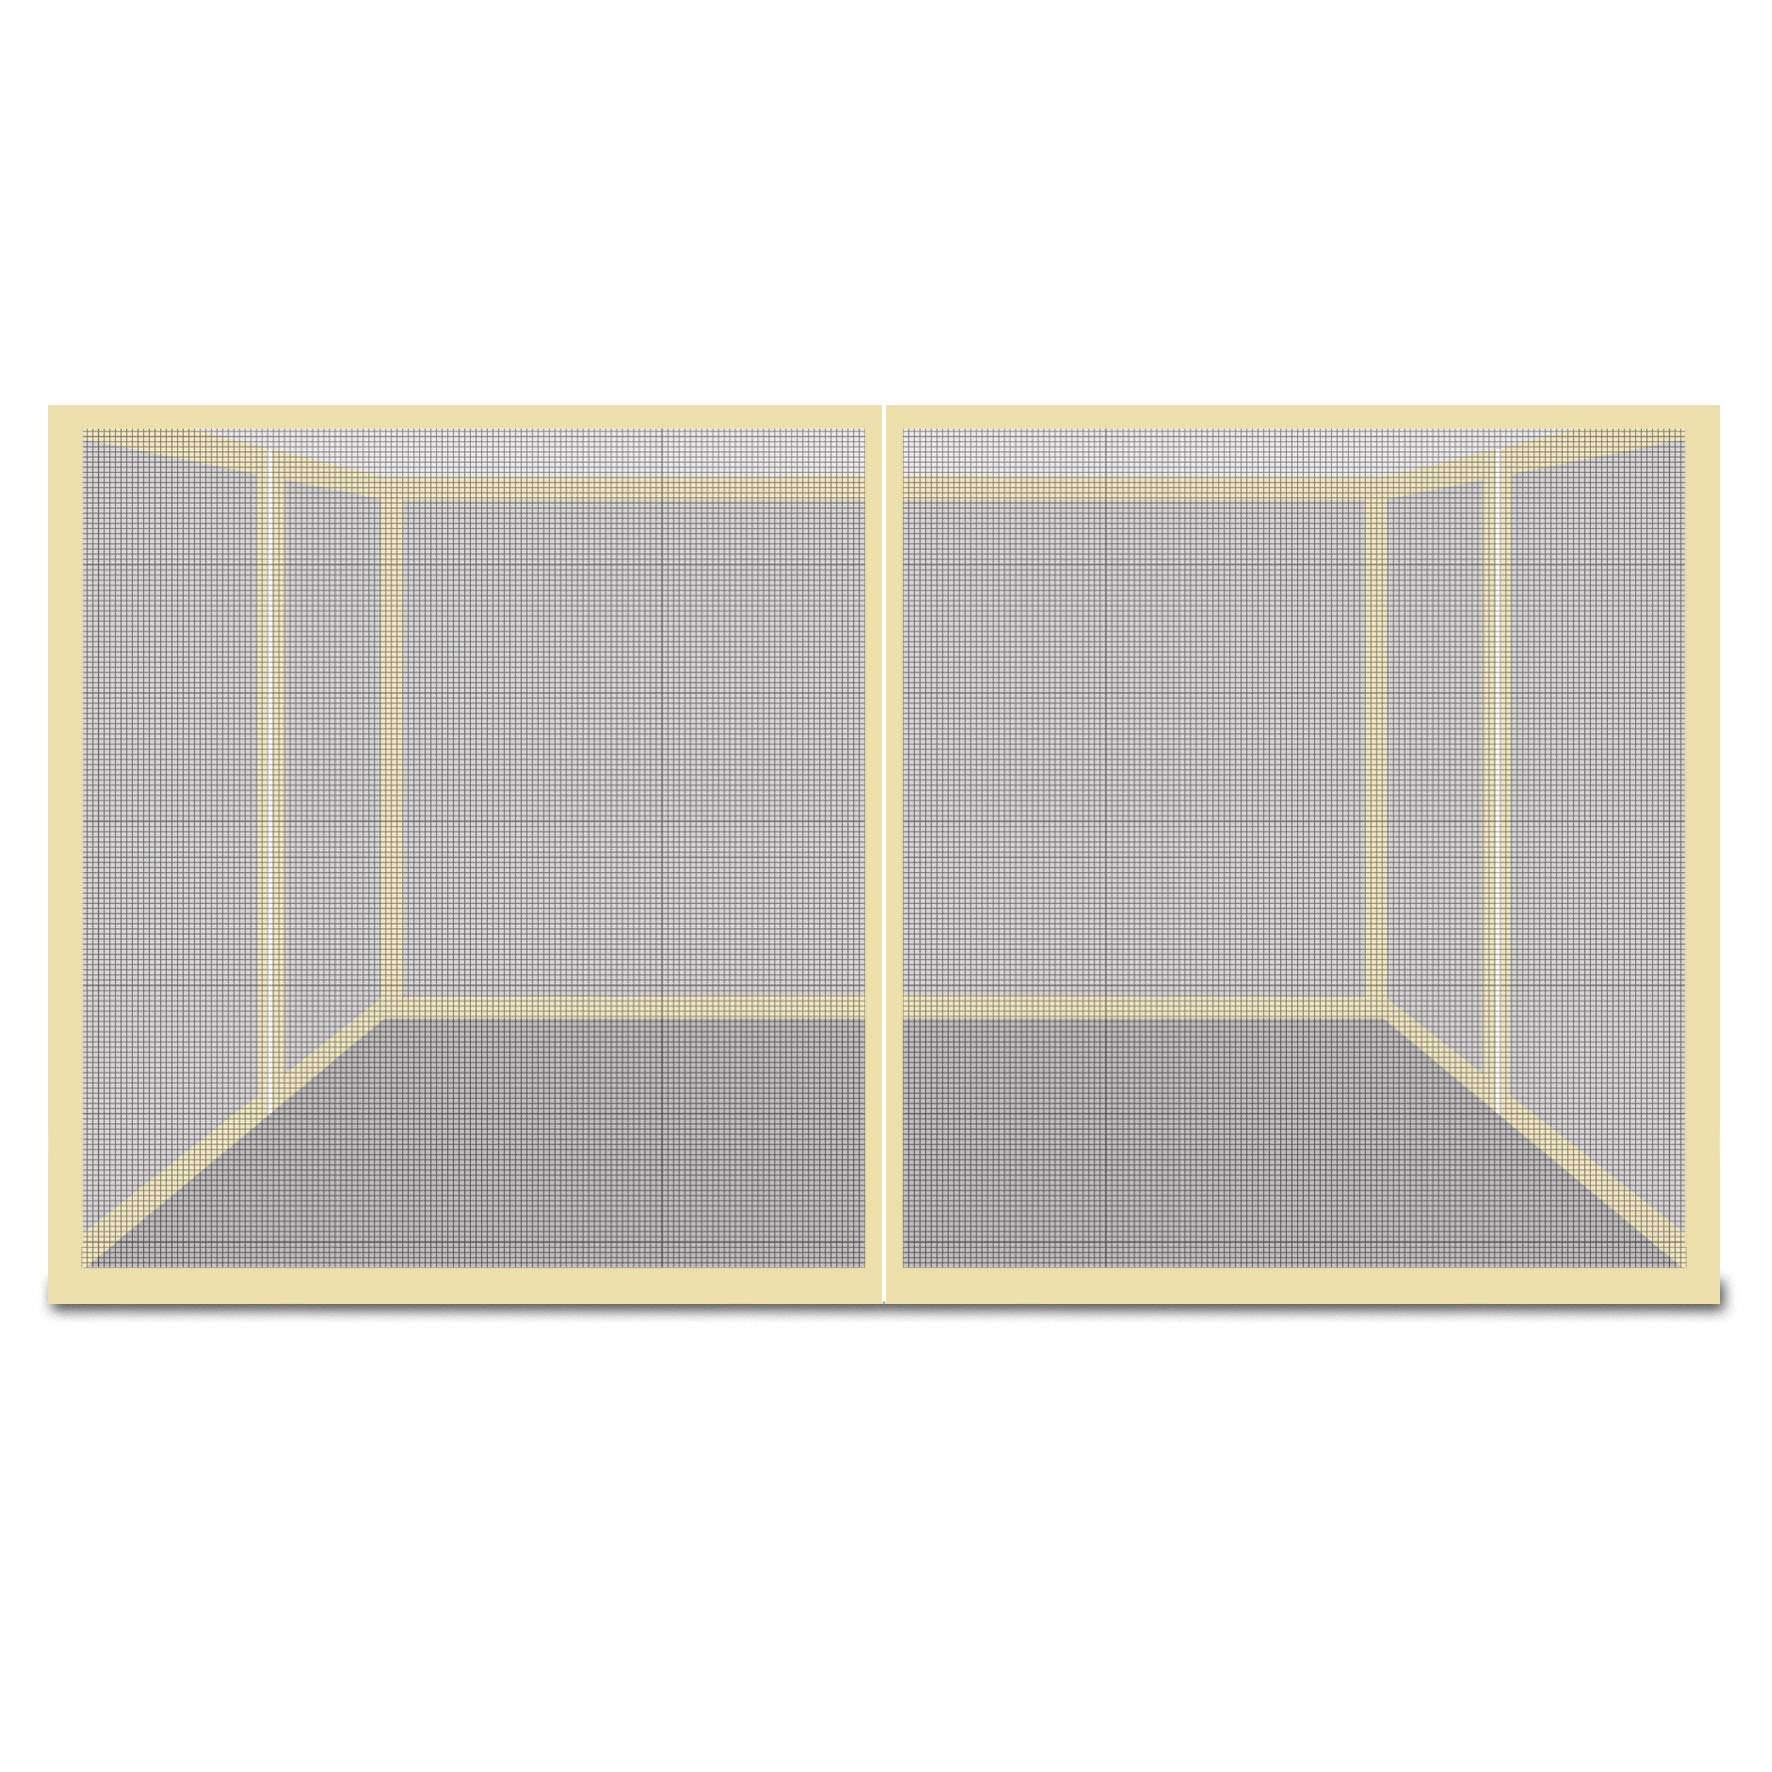 Strong Camel Mesh Canopies Screen Zippered Wall Panels Mesh Wall Sidewalls for Gazebo, Pack of 4 (Walls Only) by Strong Camel